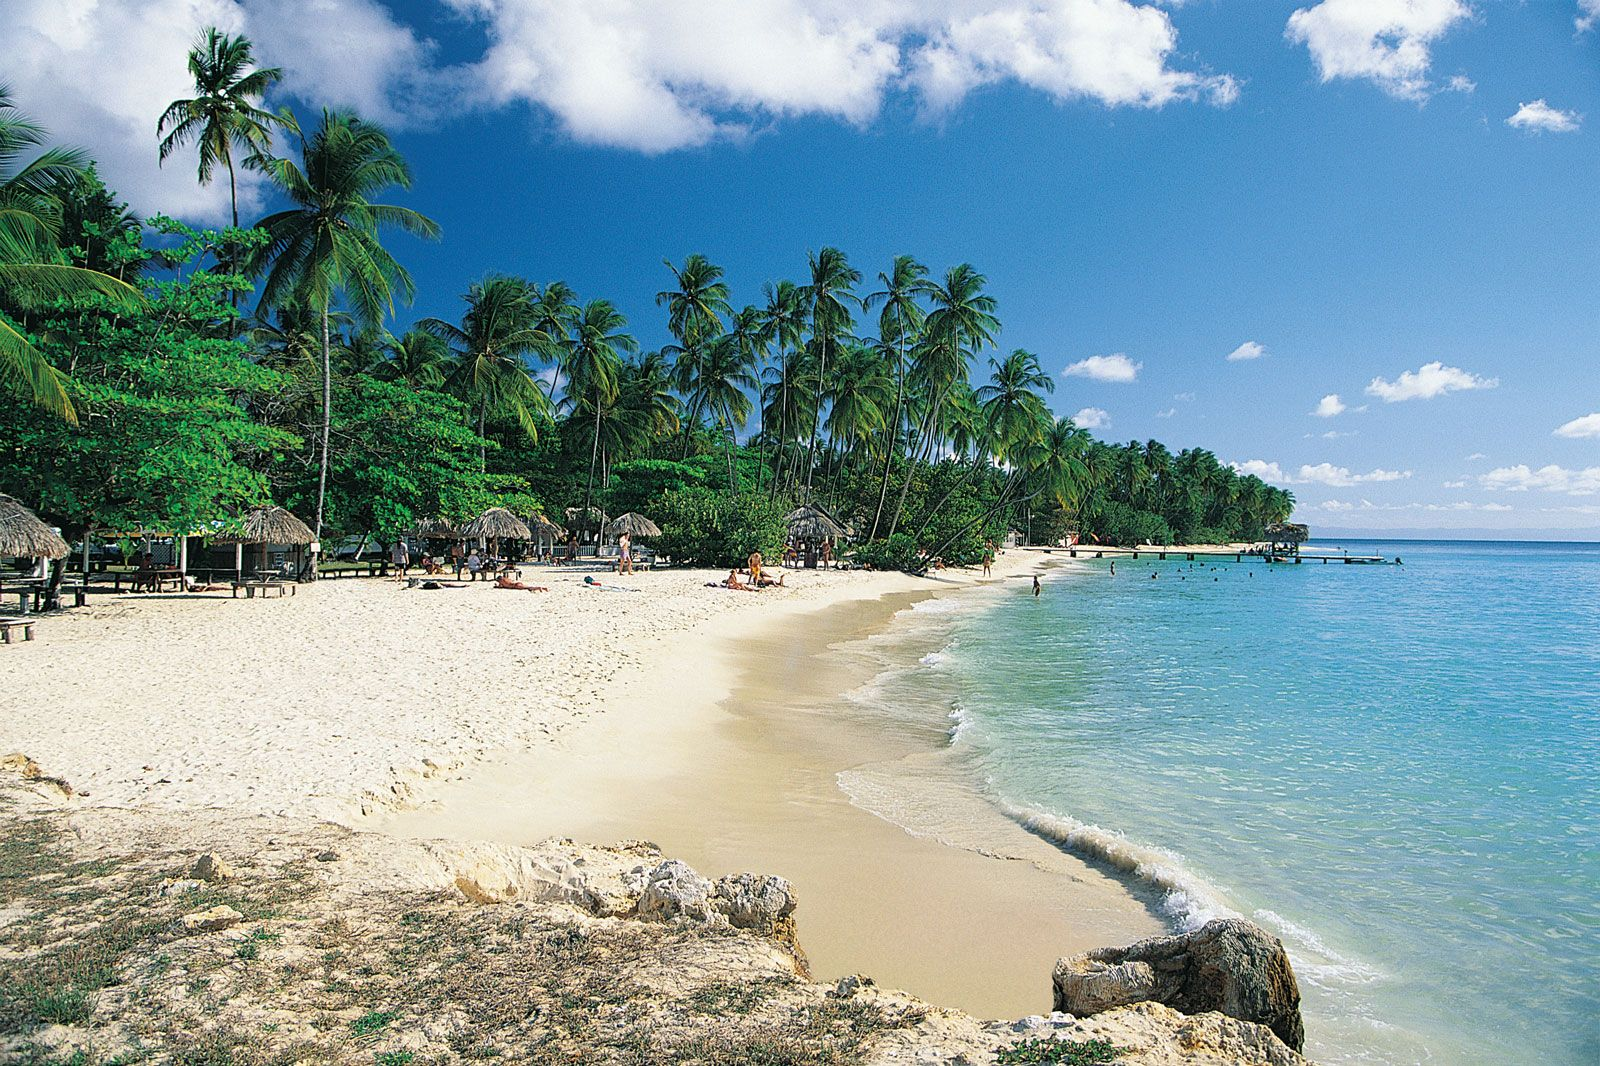 Planning The Perfect Trinidad And Tobago Vacation Trinidad And Tobago Make A Great Pair Trinidad Is Hi Great Places To Travel Trinidad Caribbean Vacations